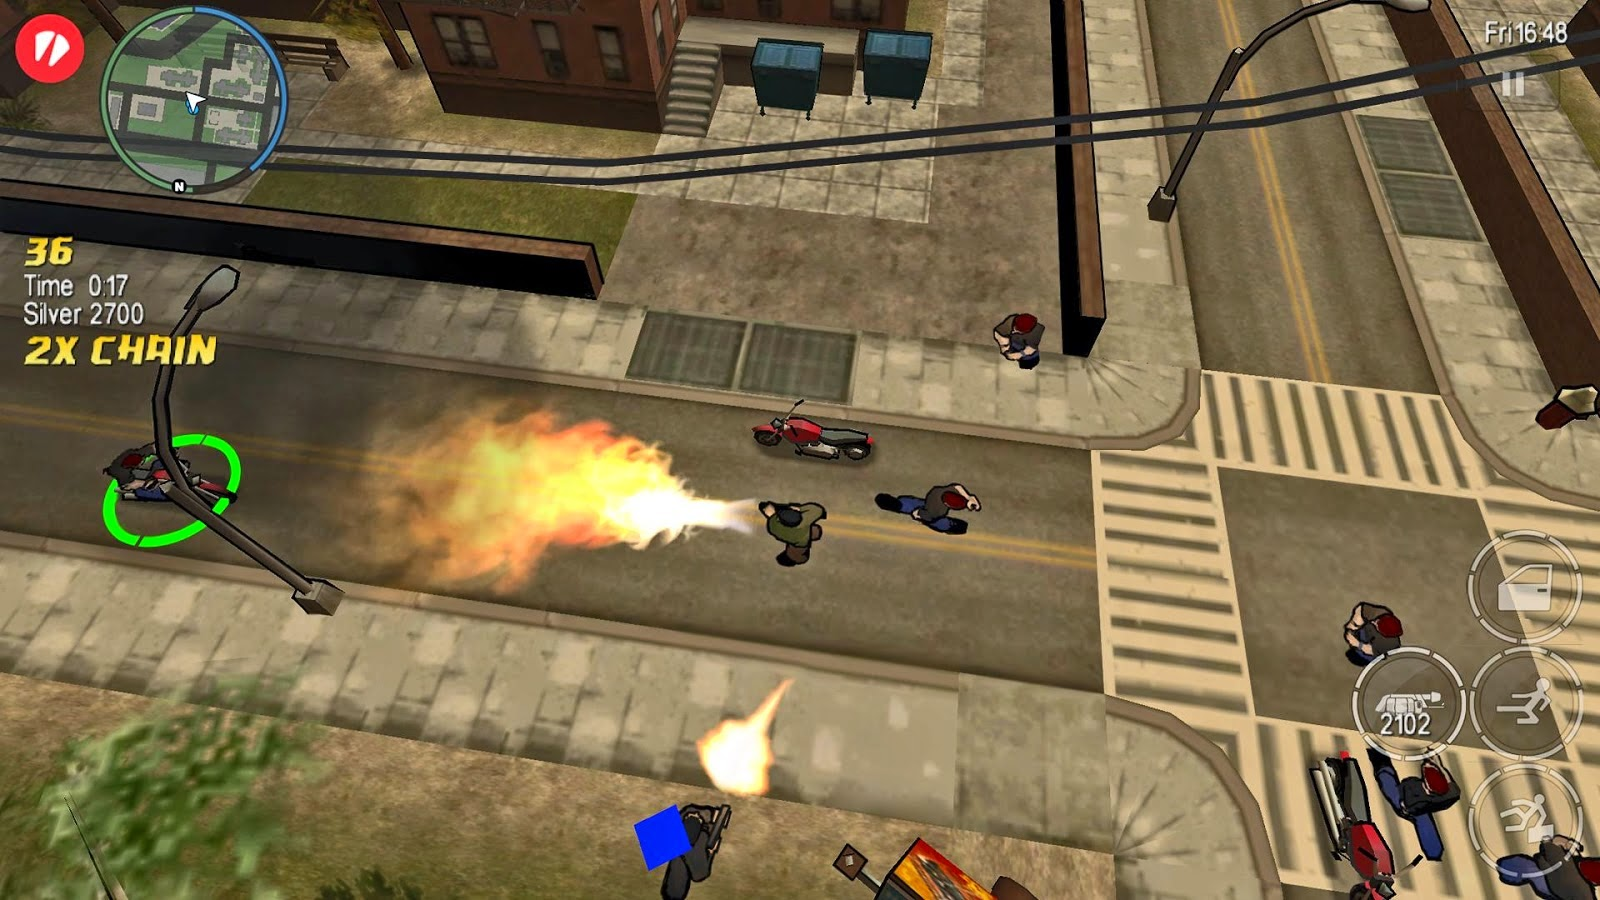 AndroCut - Android HVGA and QVGA HD Cracked Games: GTA Chinatown Wars APK+DATA v1.00 (1.00) Download